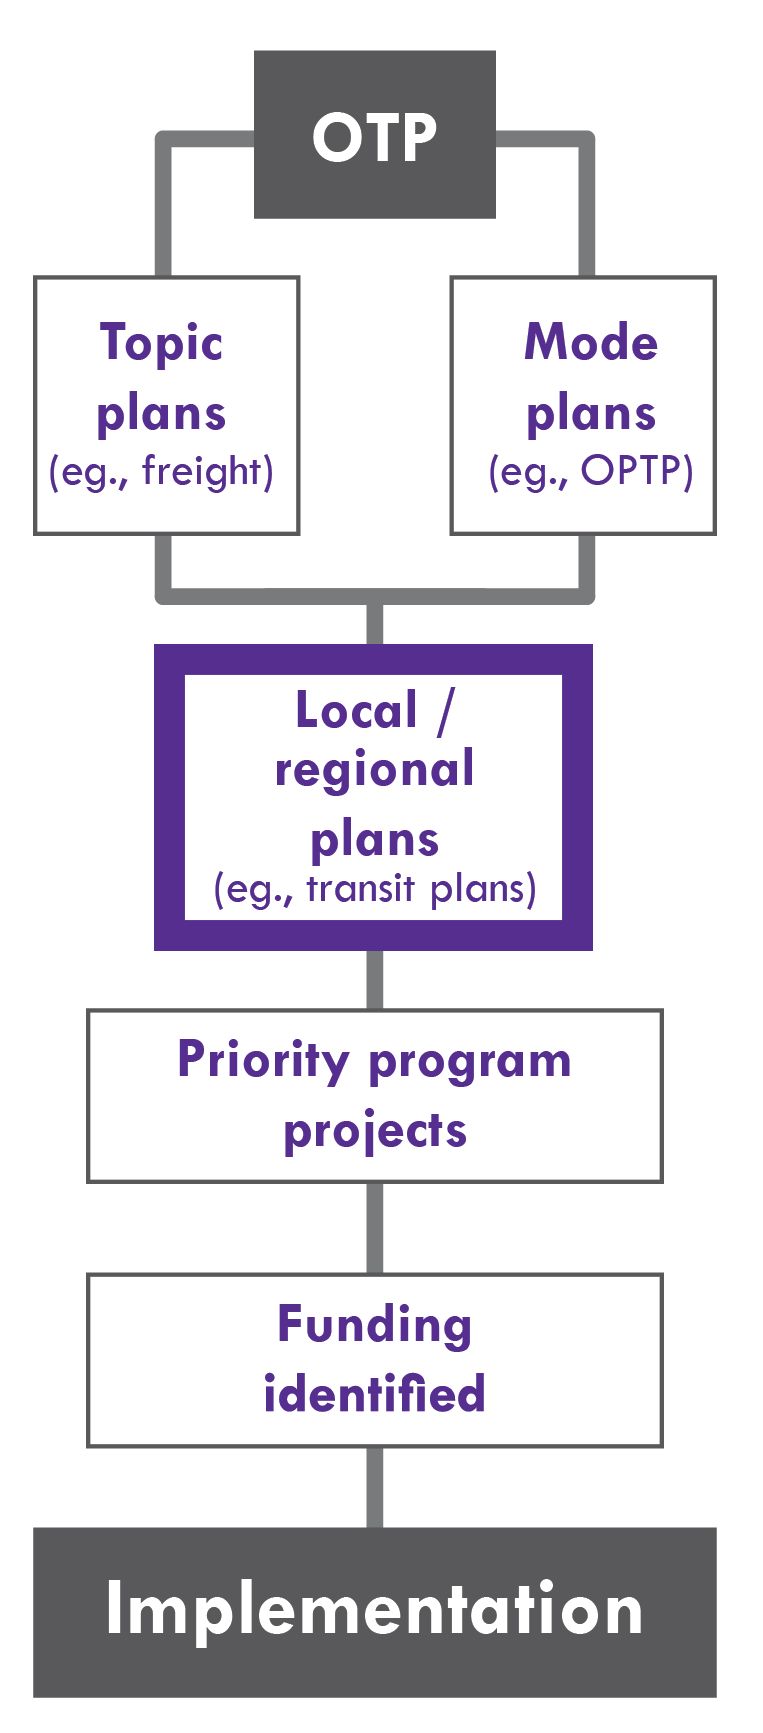 The Oregon Transportation Plan informs topic and mode plans, which in turn informs local/regional plans, which guide priority program projects and funding identification leading to implementation.